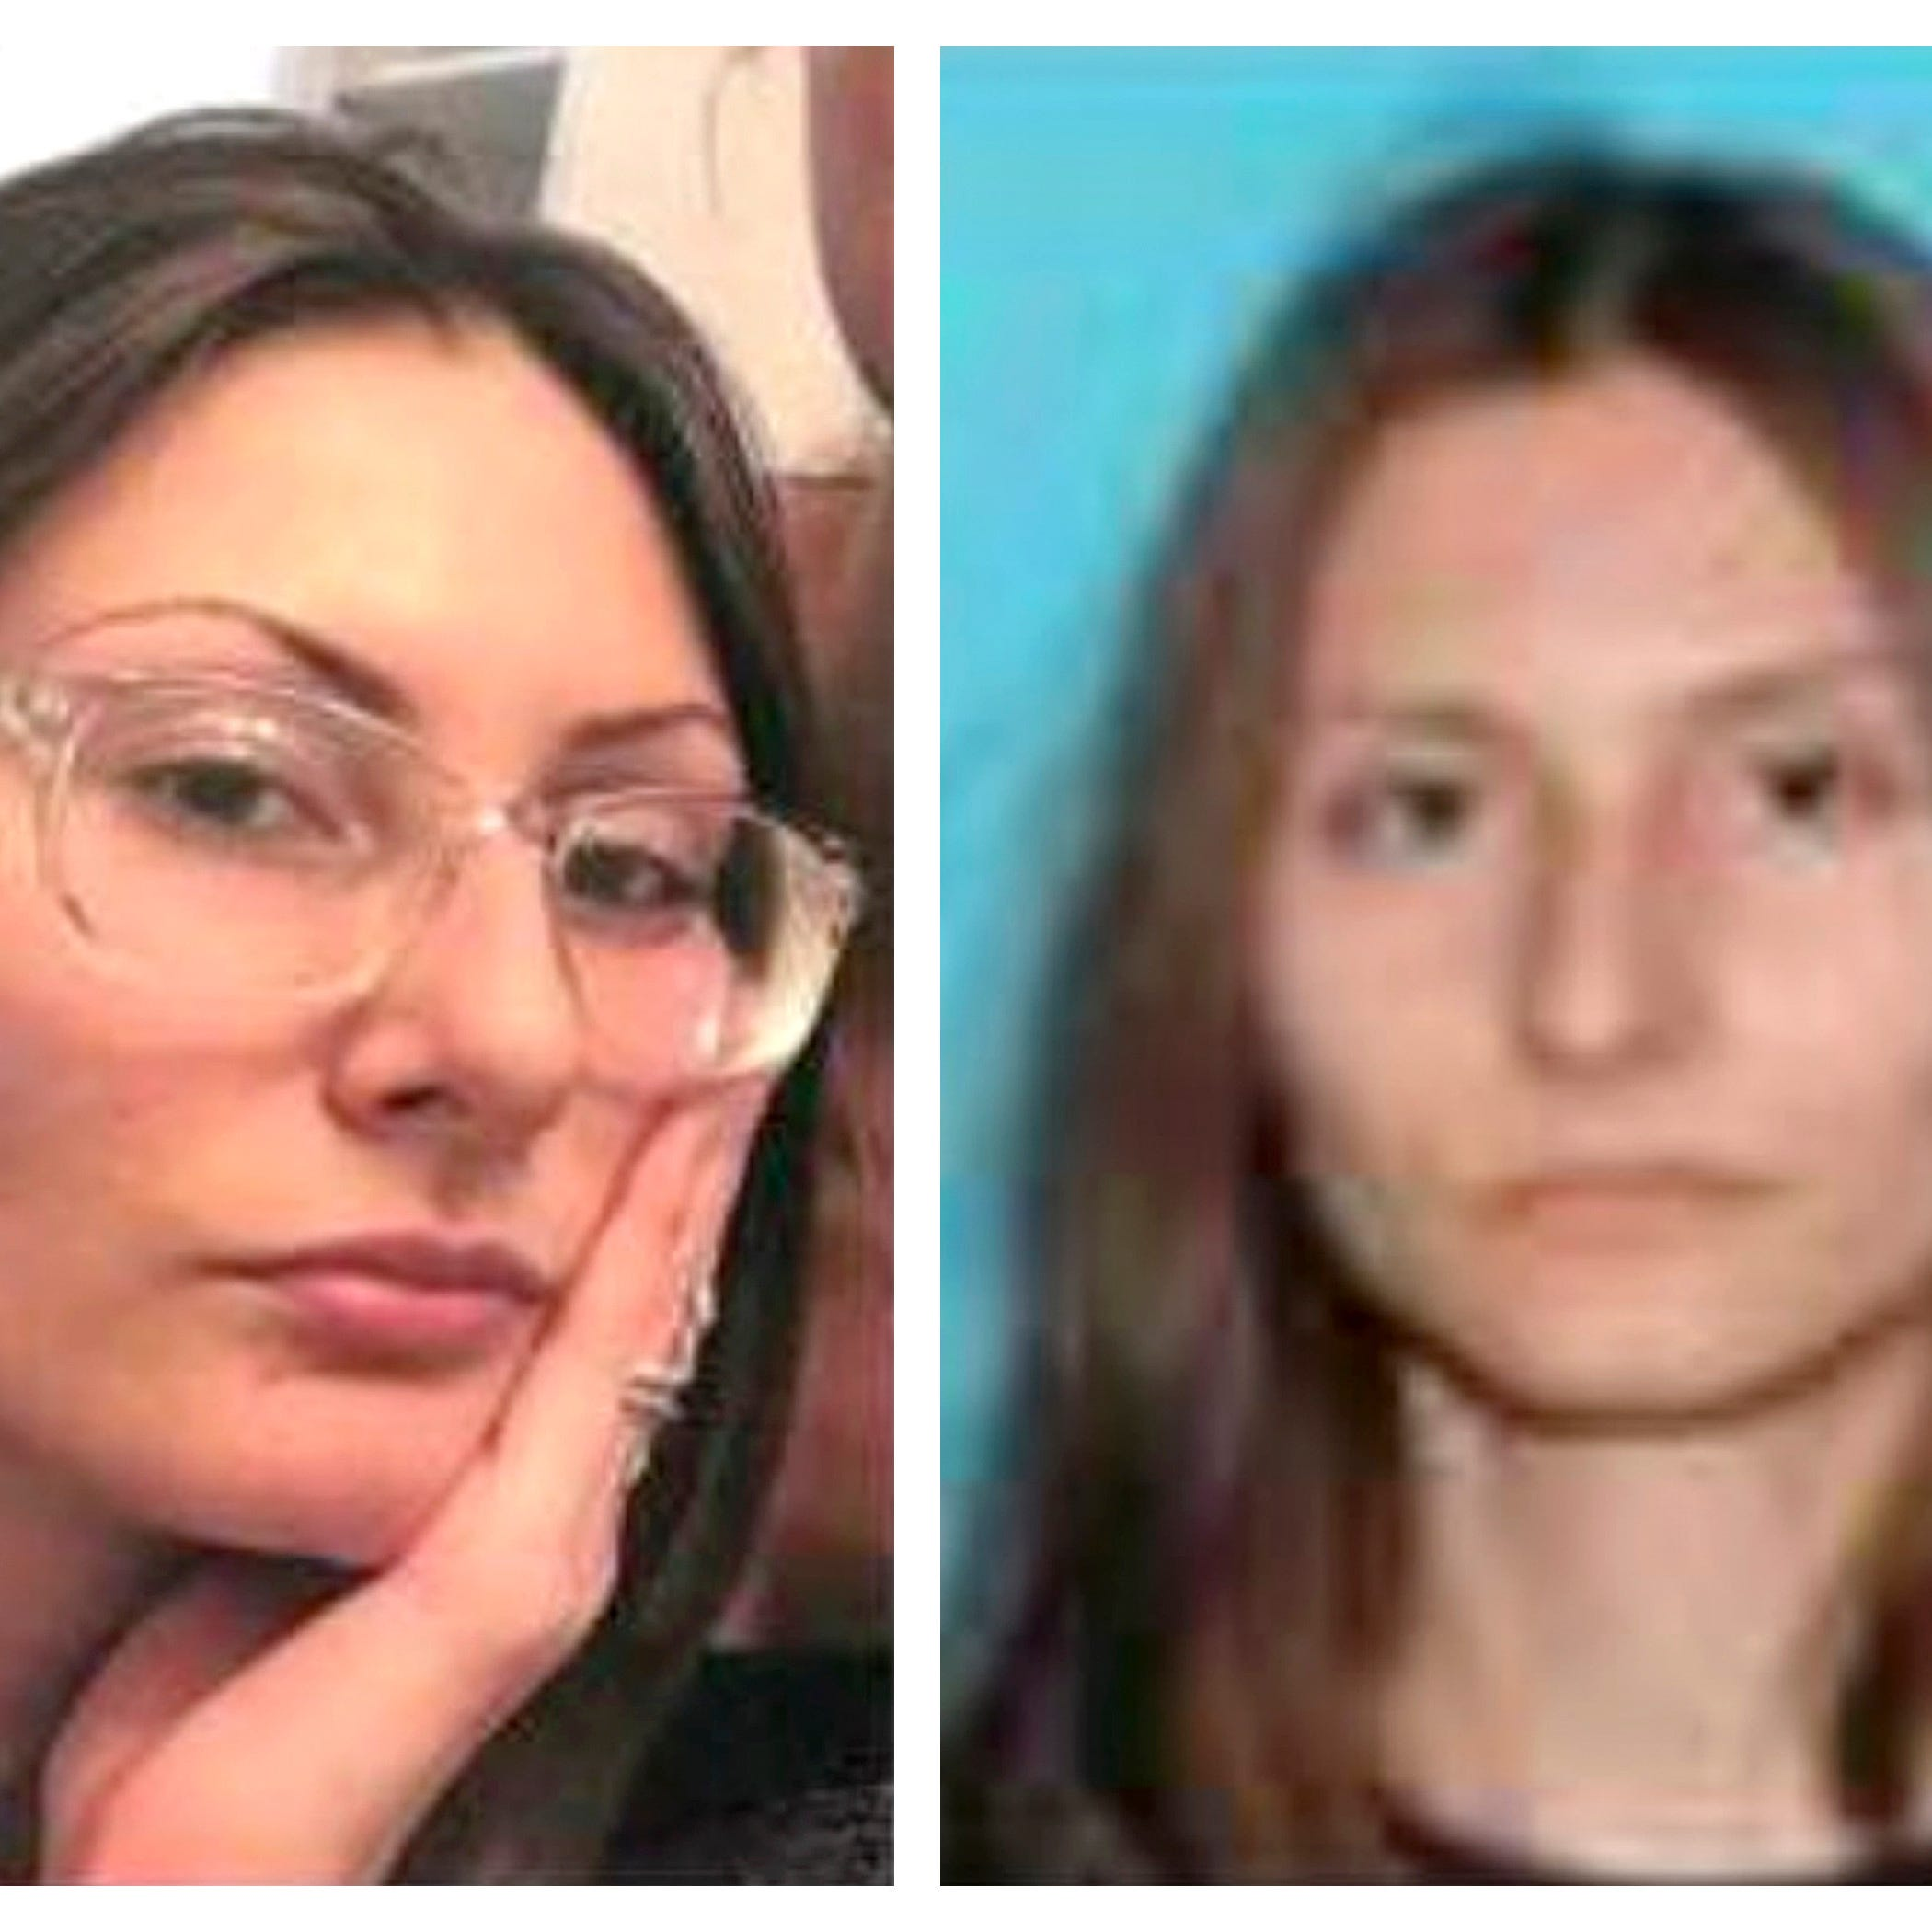 Woman 'infatuated' by Columbine shooting found dead of self-inflicted gunshot wound